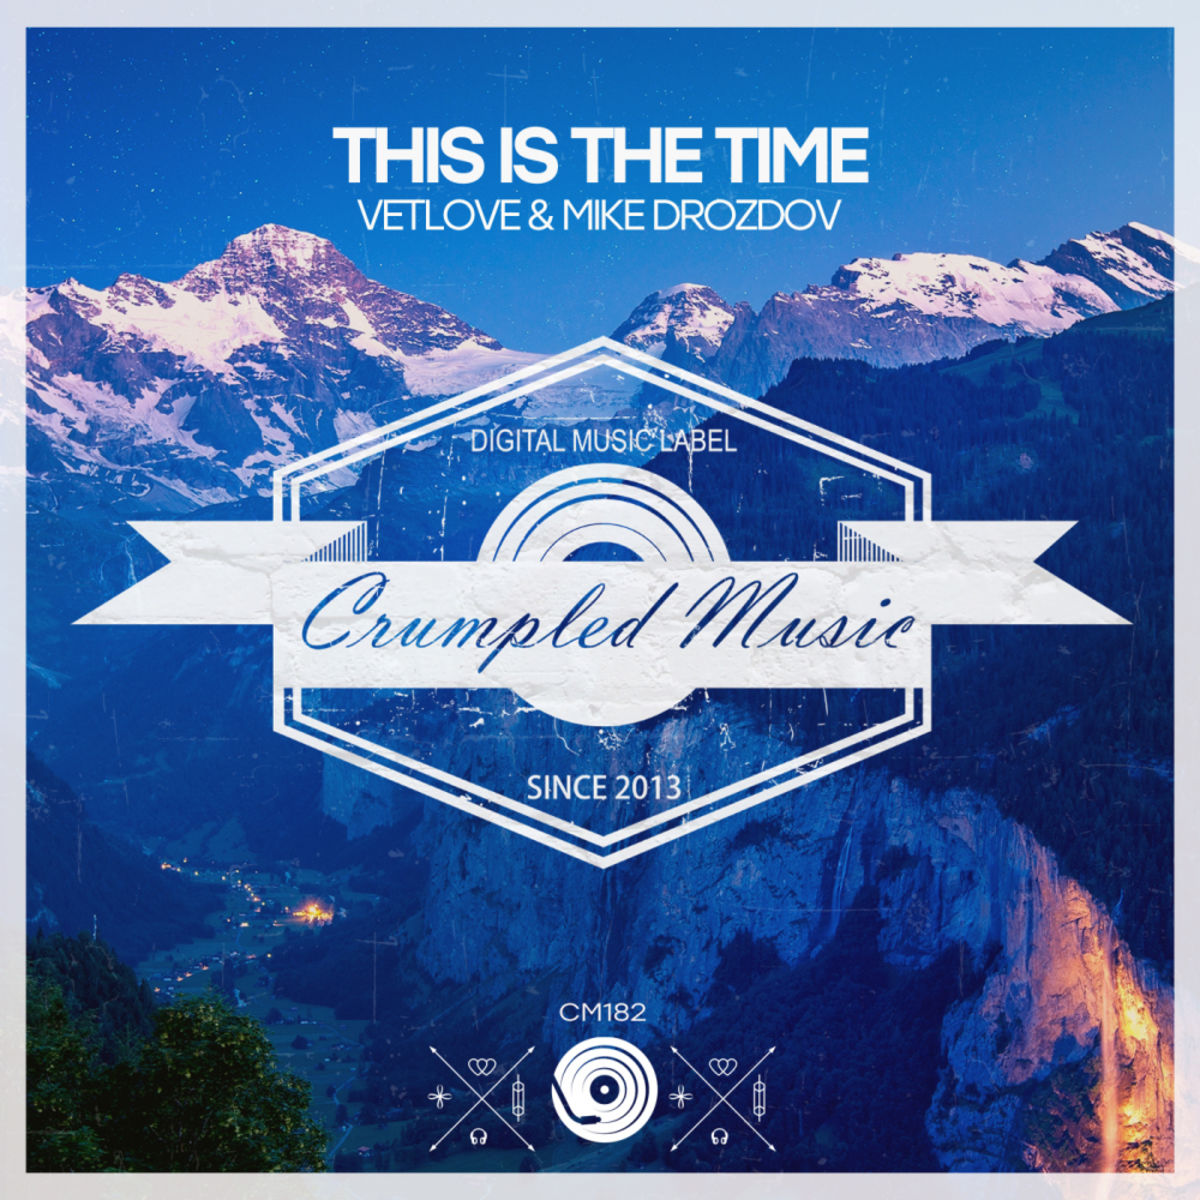 VetLOVE, Mike Drozdov - This Is The Time  (Dub Mix)